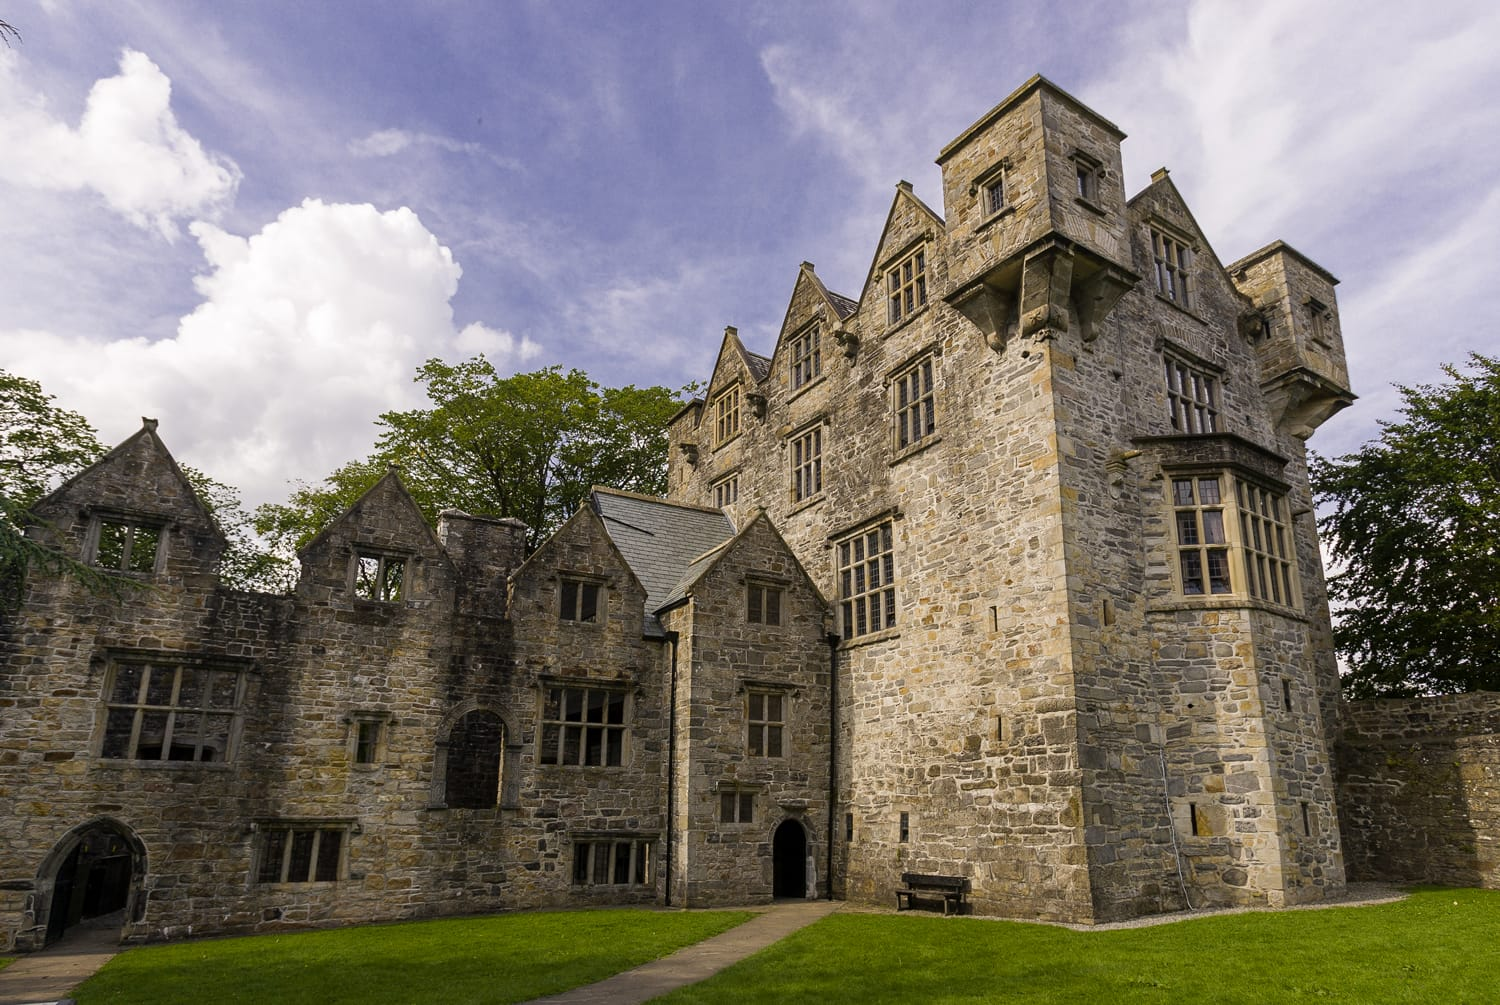 Donegal Castle in Ireland